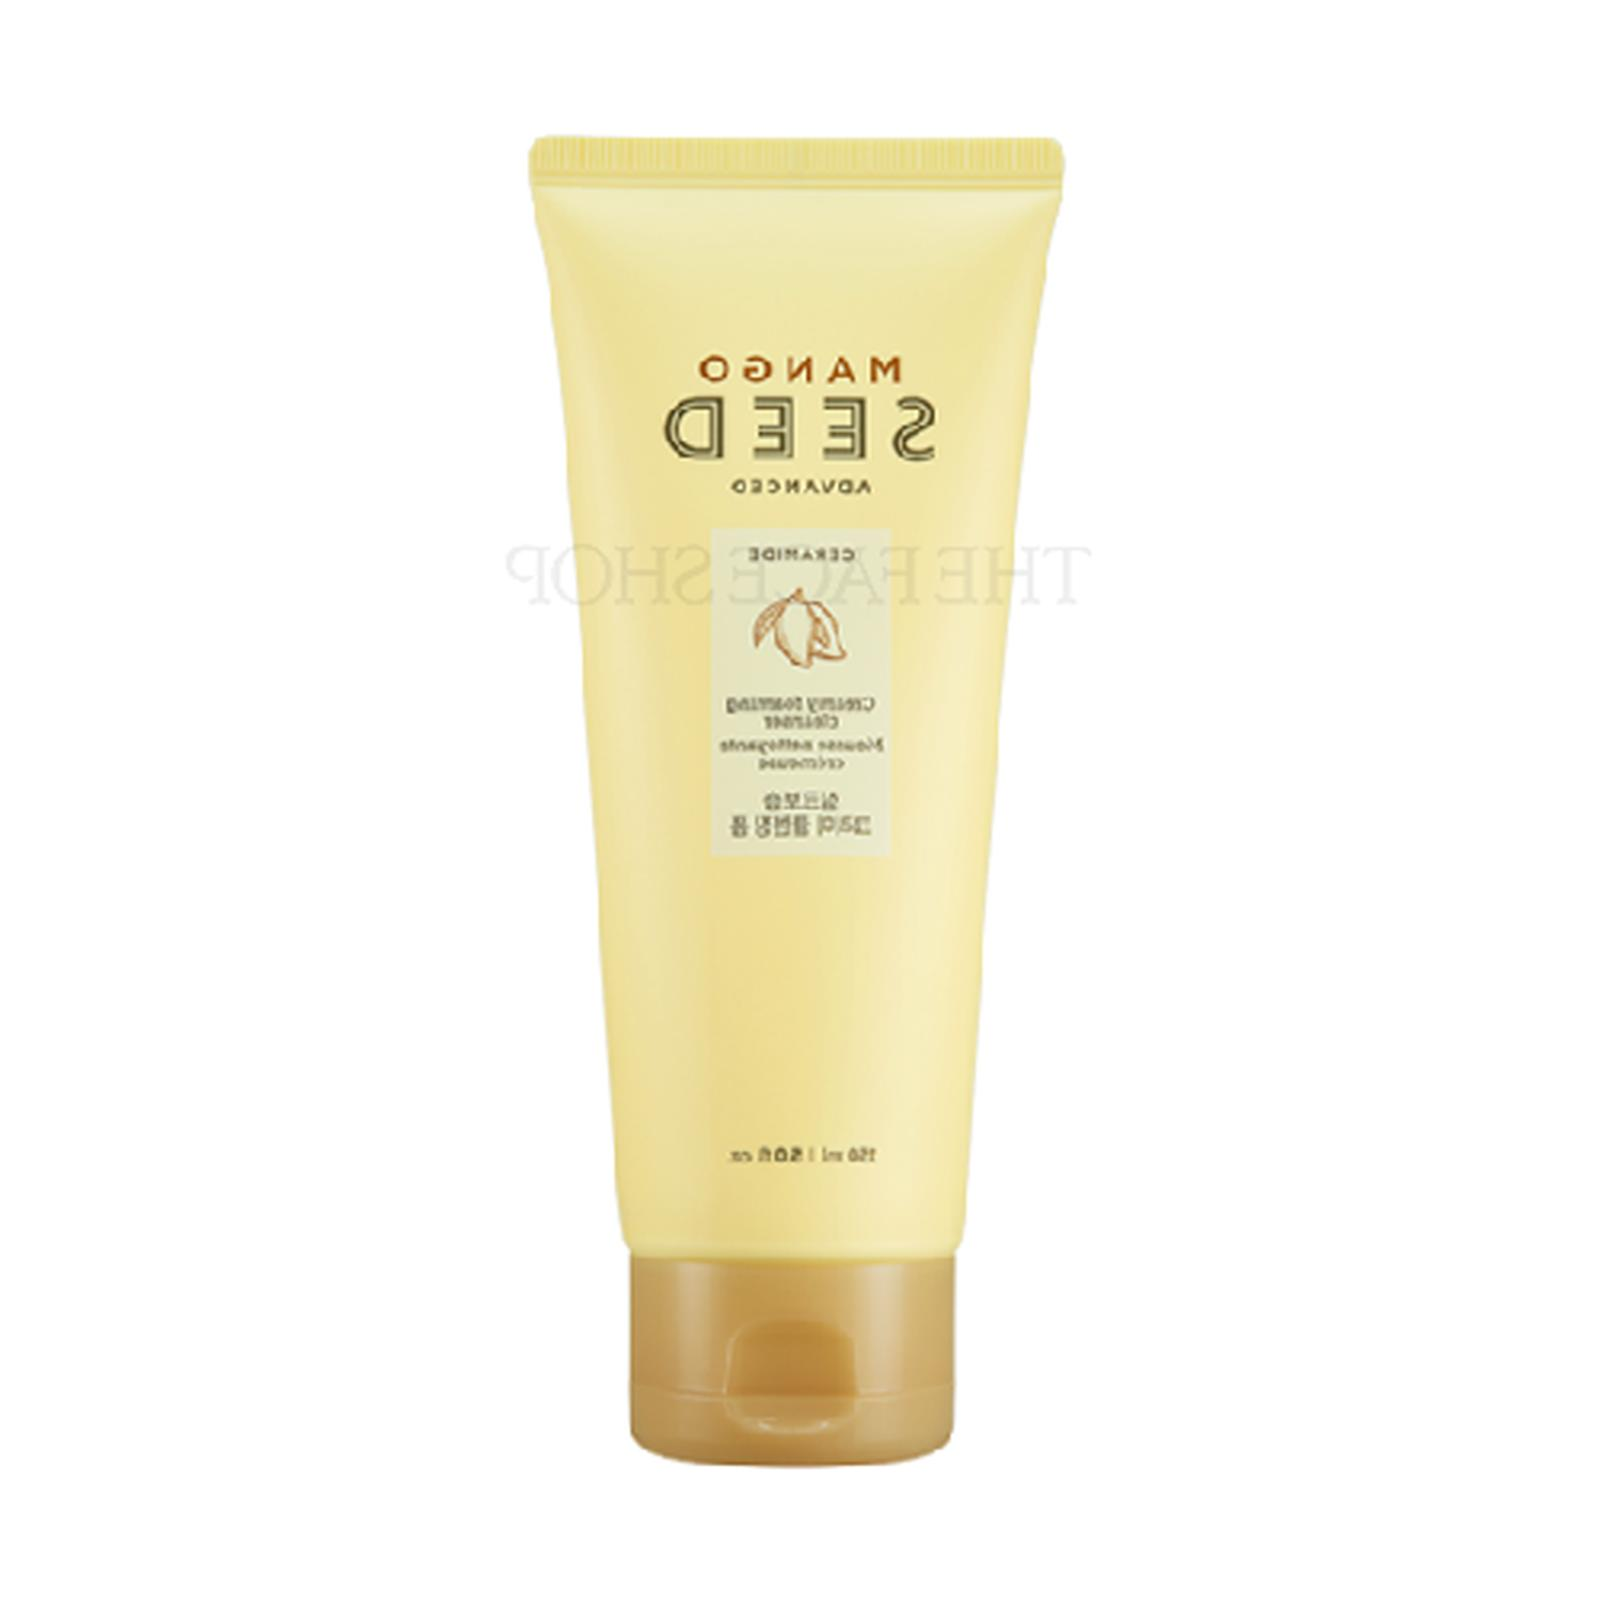 mango seed cleansing foam 150ml